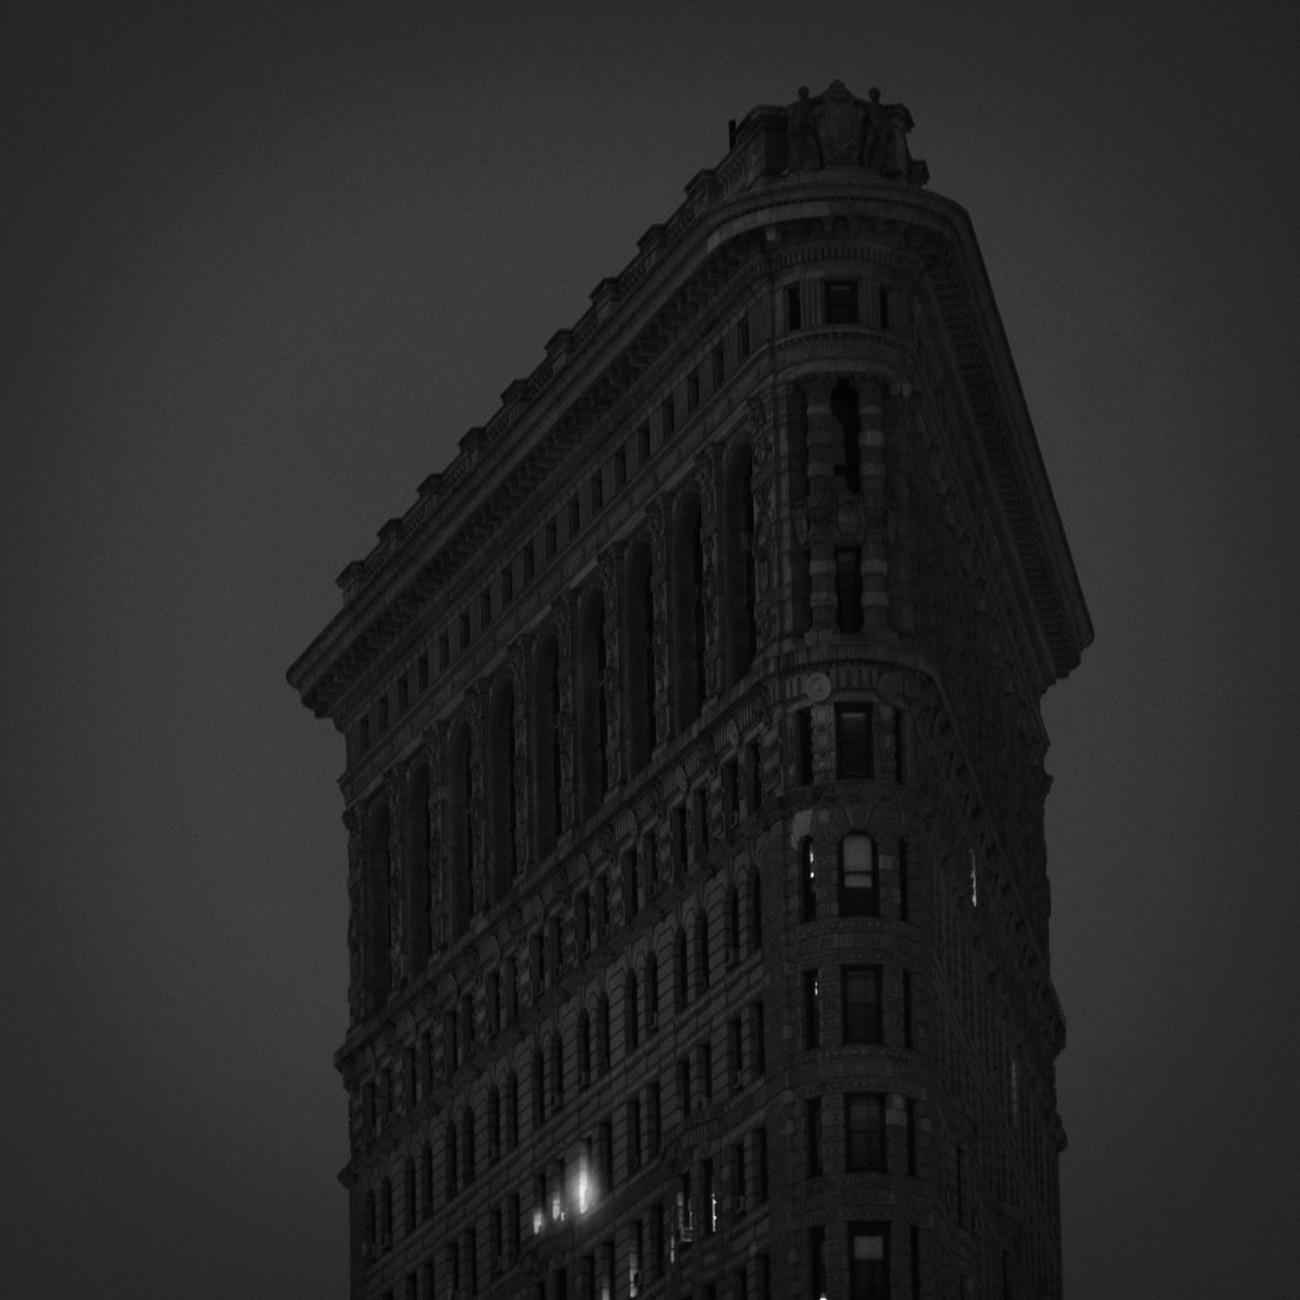 Working late, the Flatiron Building, NY, 2015